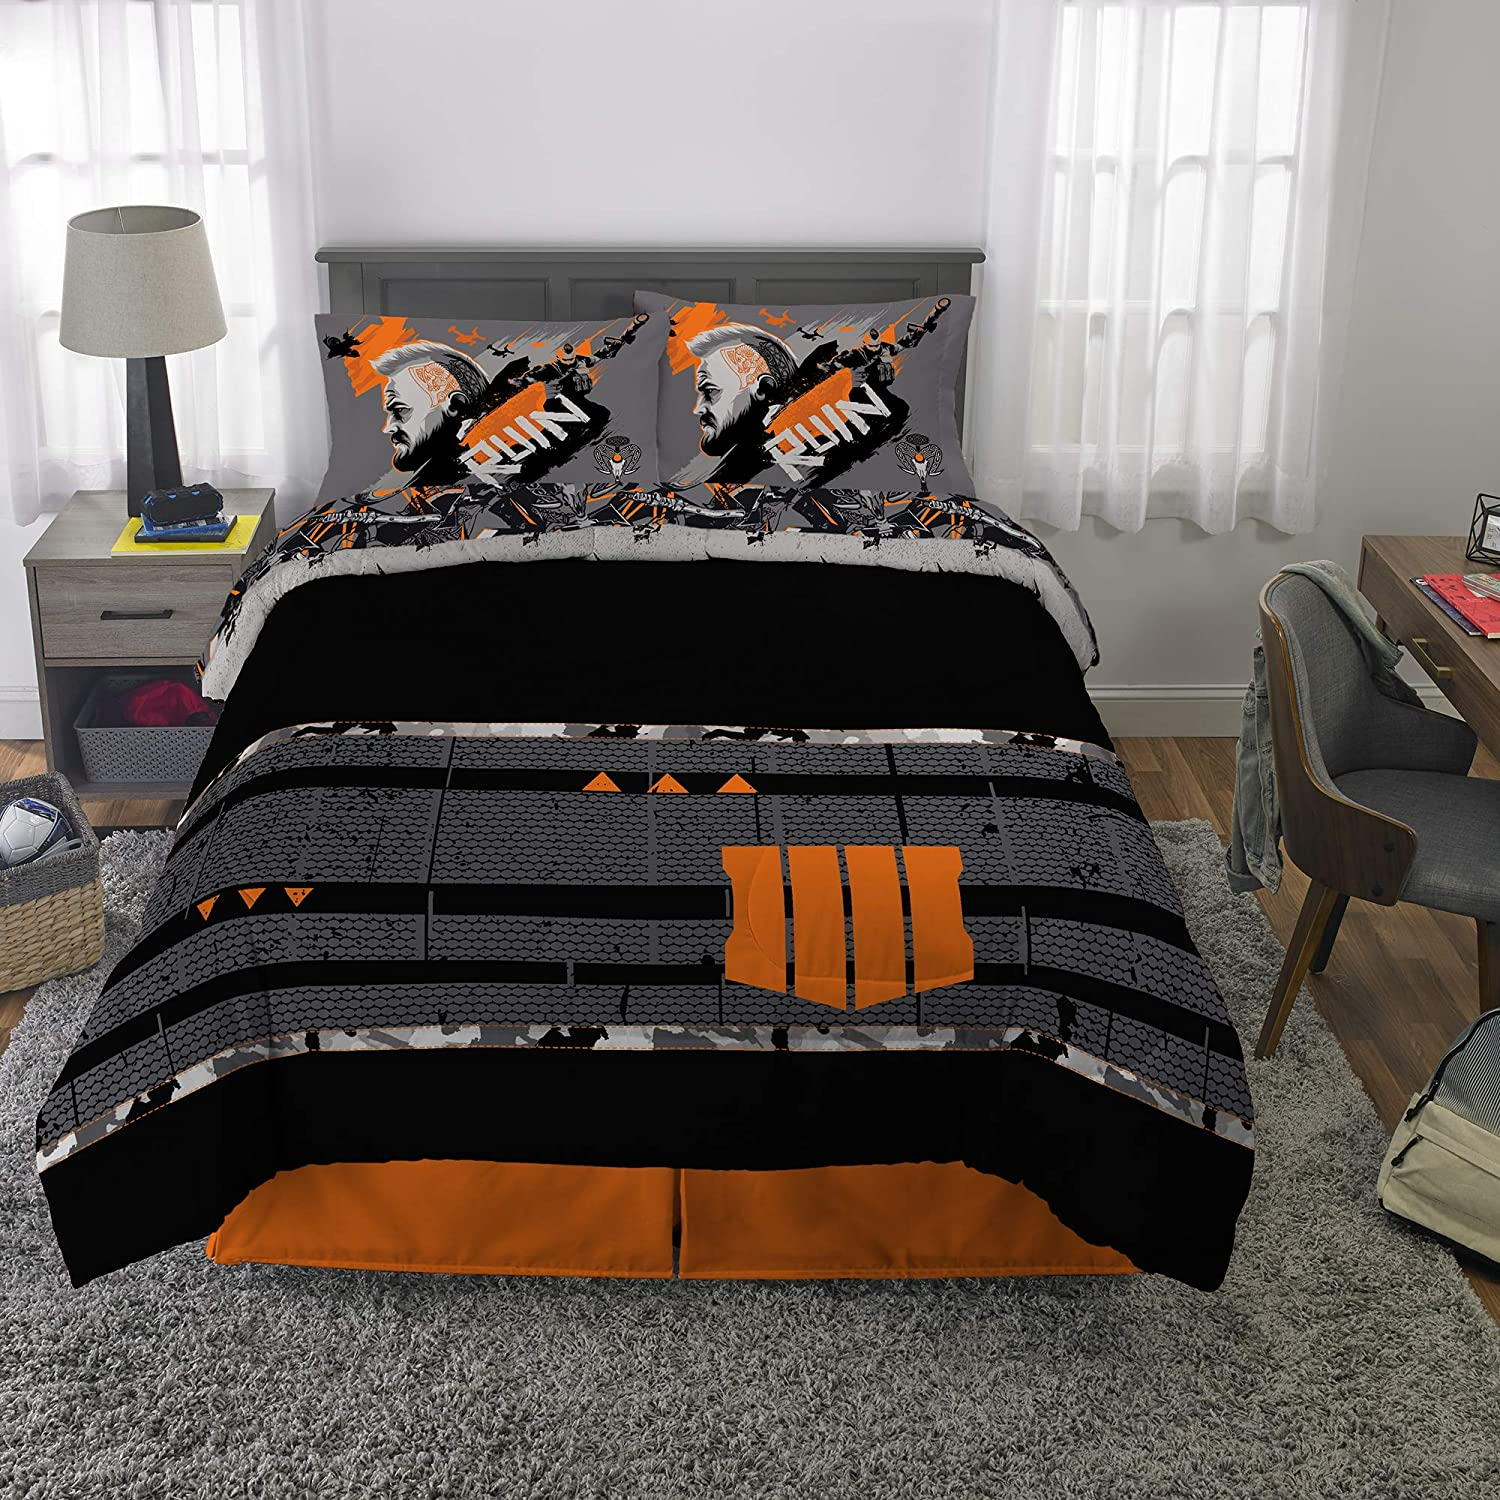 Franco Bedding Super Soft Comforter and Sheet Set, 5 Piece Full Size, Call of Duty Black Ops